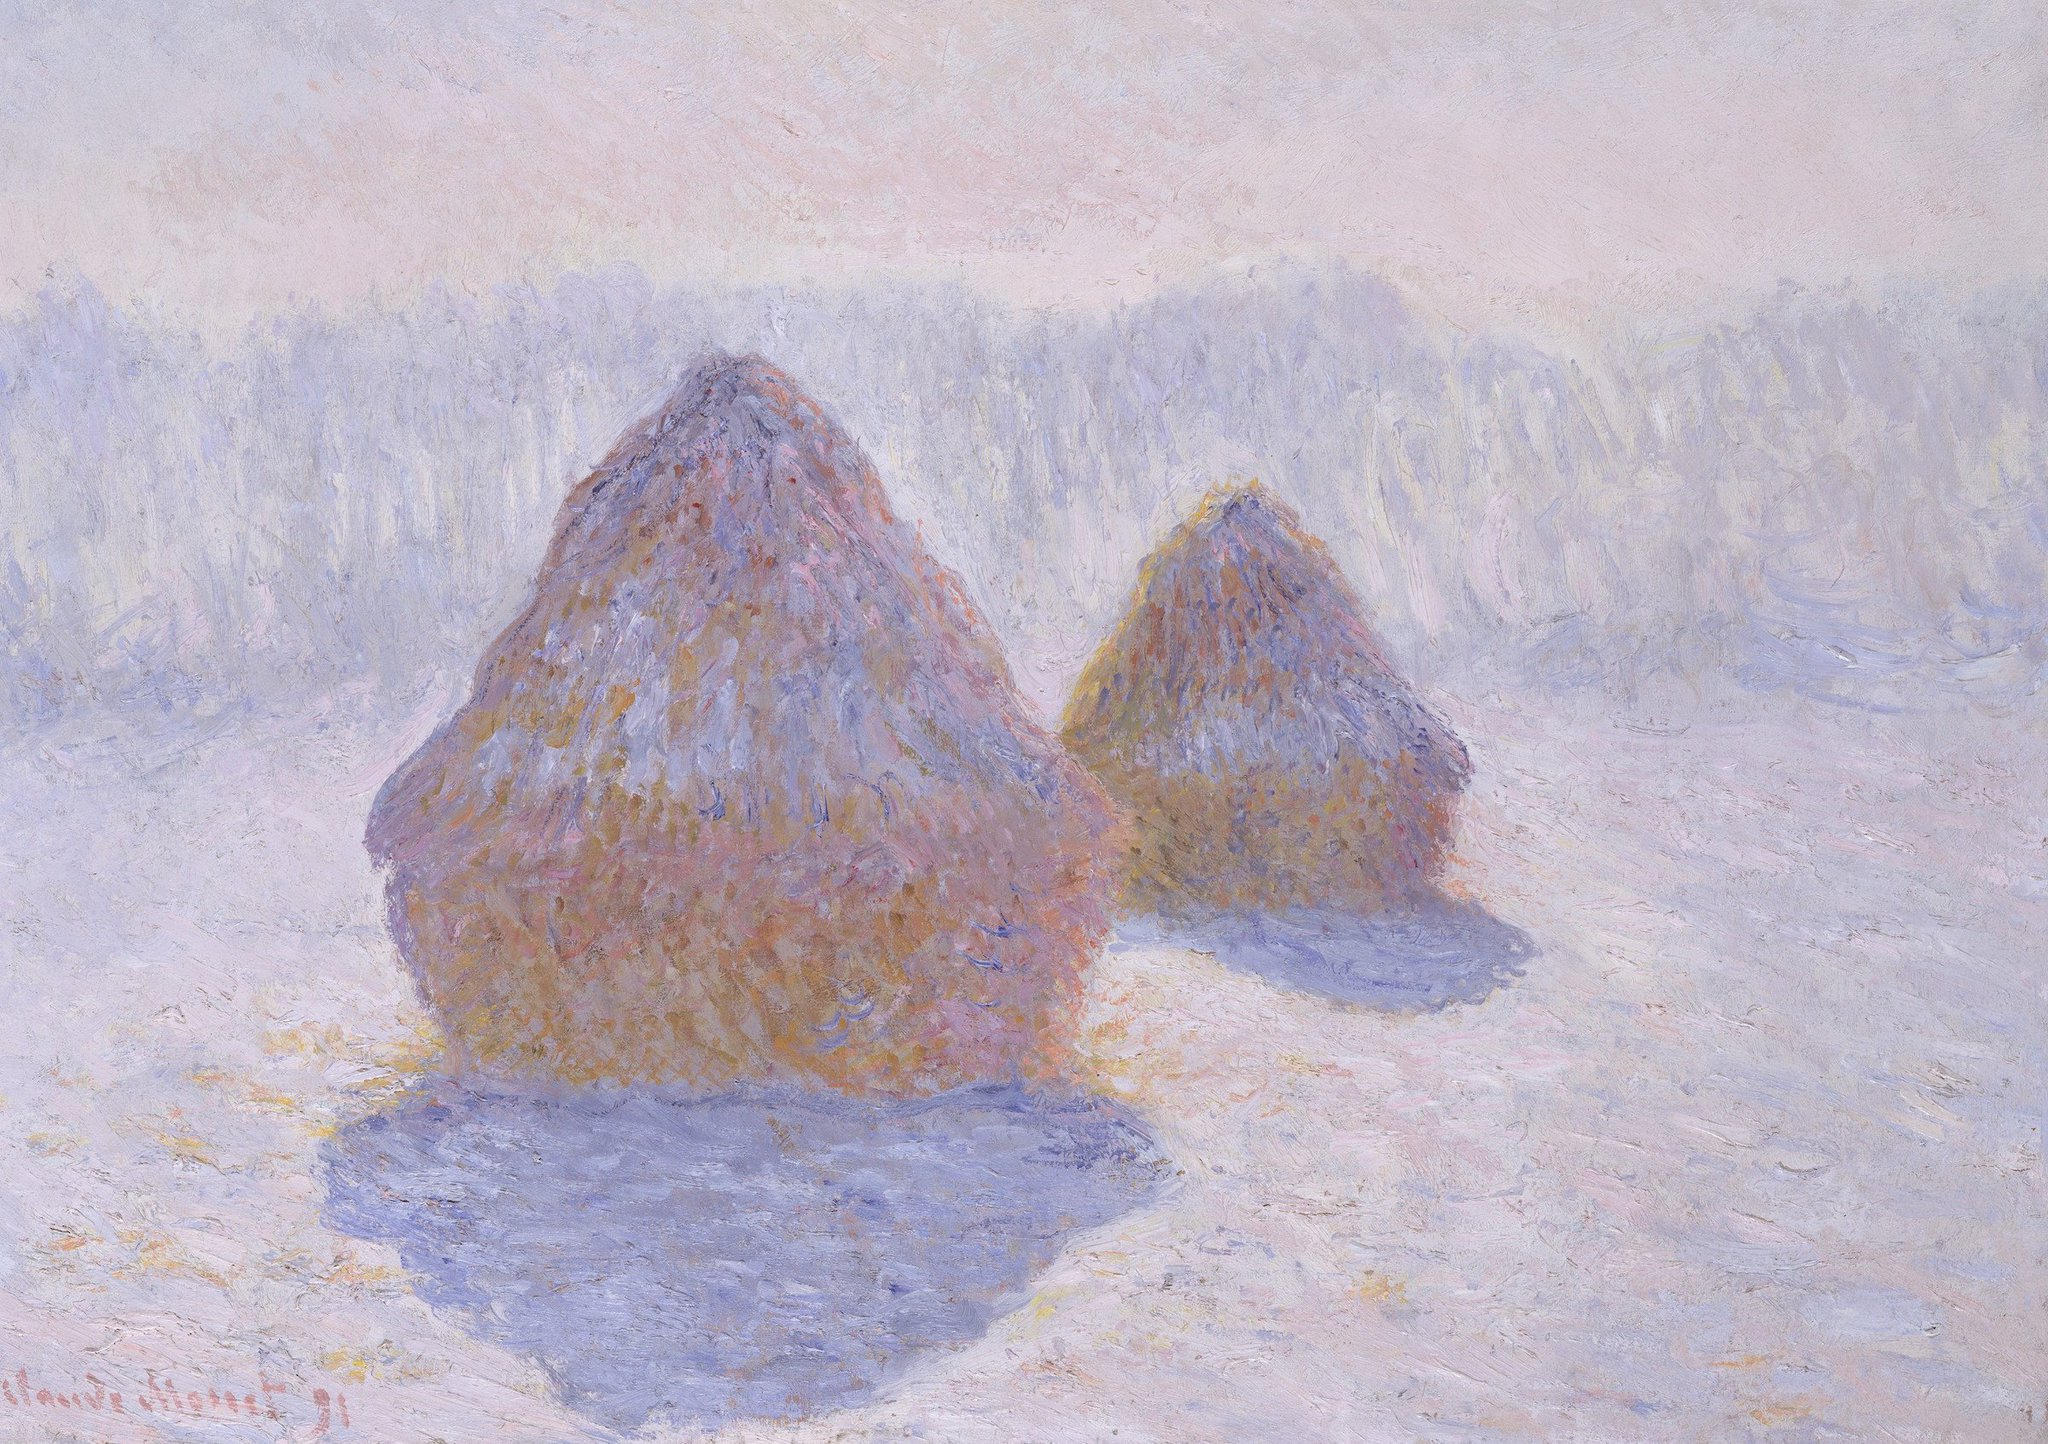 """The Metropolitan Museum of Art در توییتر """"Between 1890 and 1891 Monet  devoted some thirty paintings to the haystacks at Giverny.  https://t.co/eQhzfs1HIP… """""""